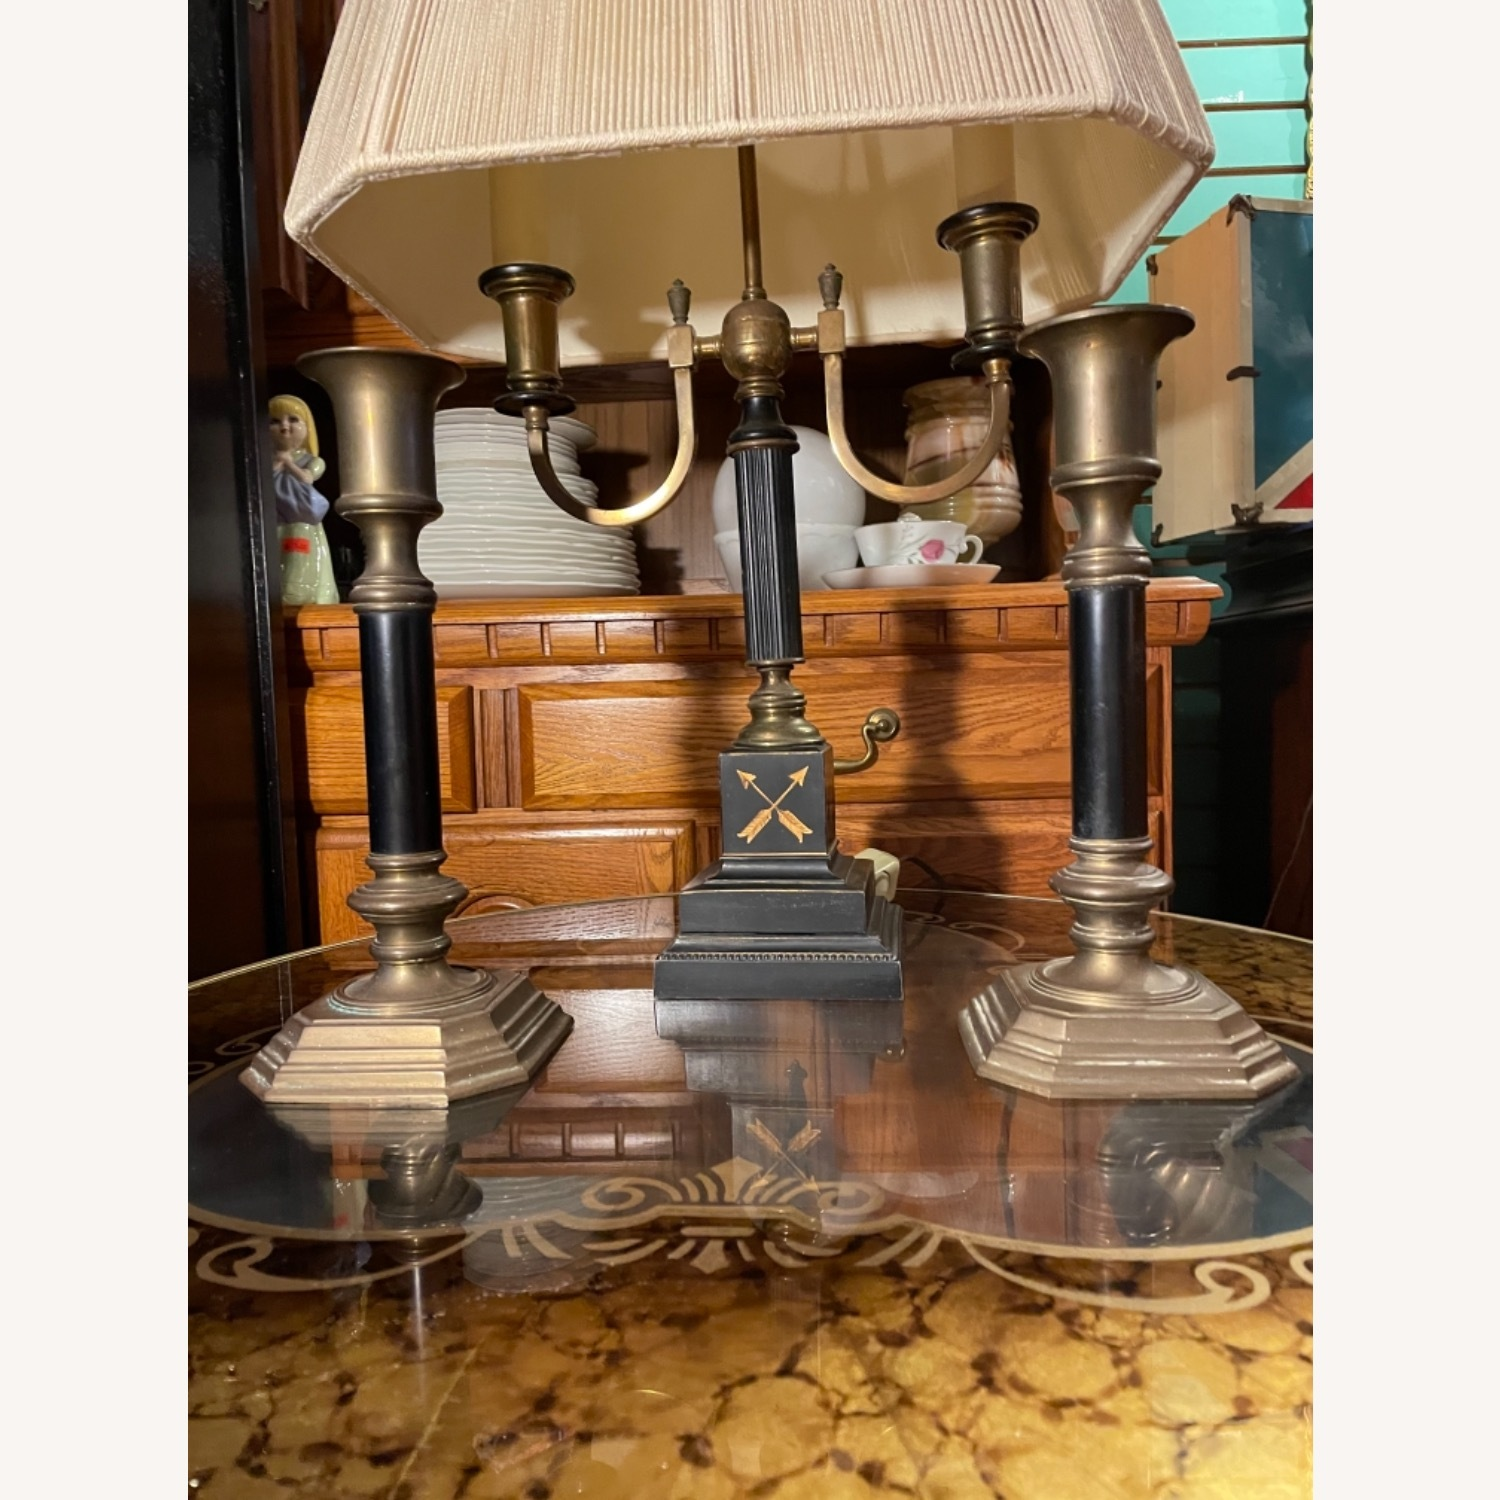 Antique 1930s Set of Brass Candle Sticks & Lamp - image-3